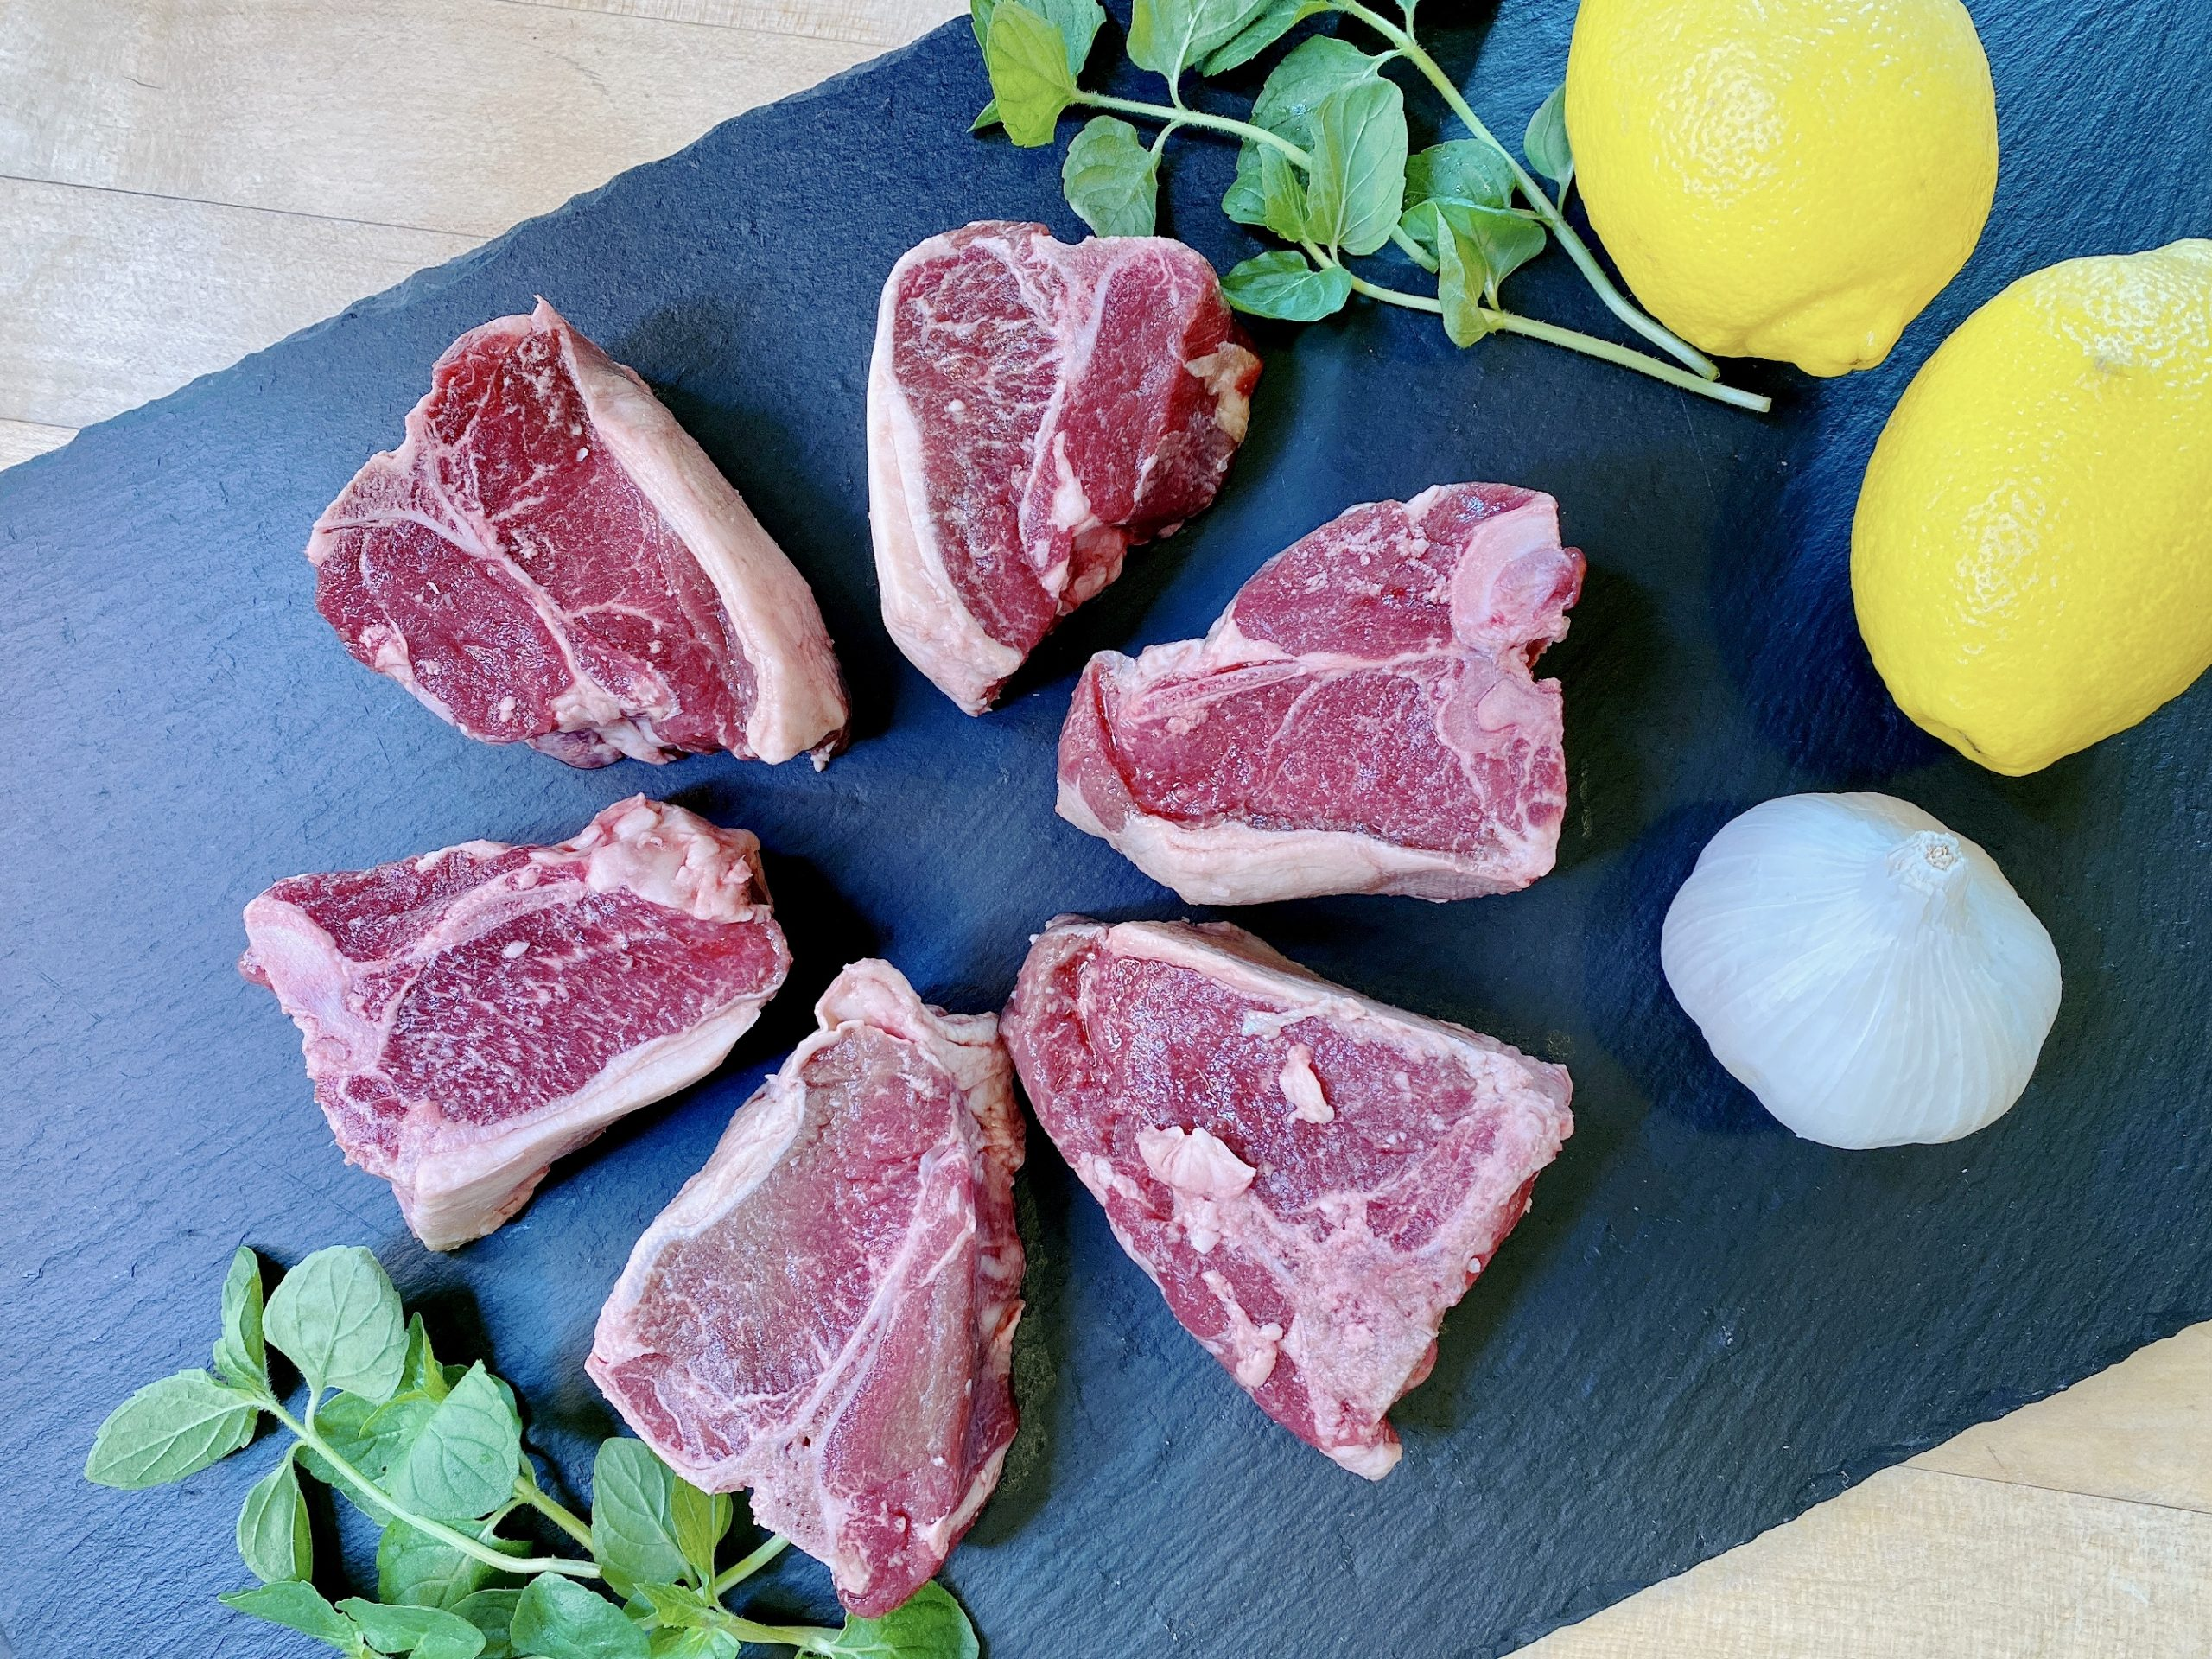 uncooked lamb chops arrange in star pattern on black background with lemon, garlic and mint